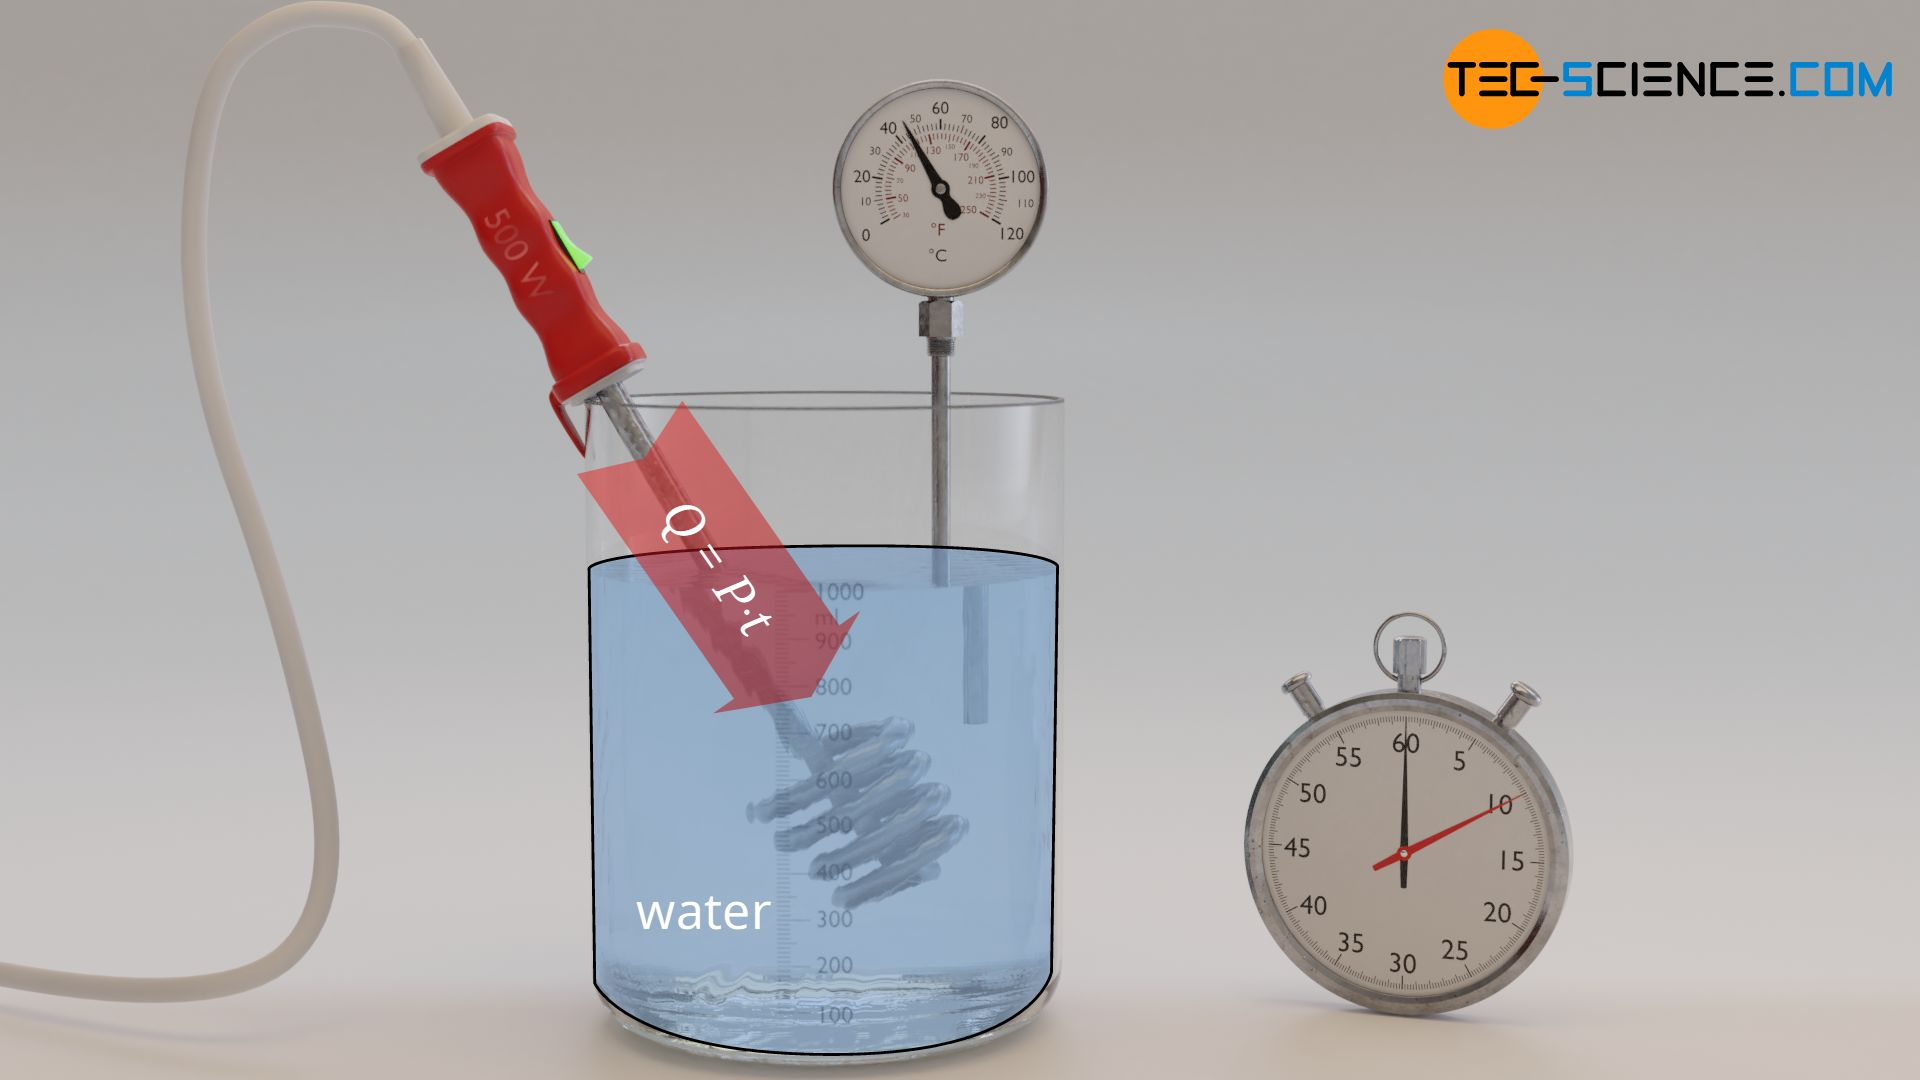 Determination of the supplied heat via electrical power and time